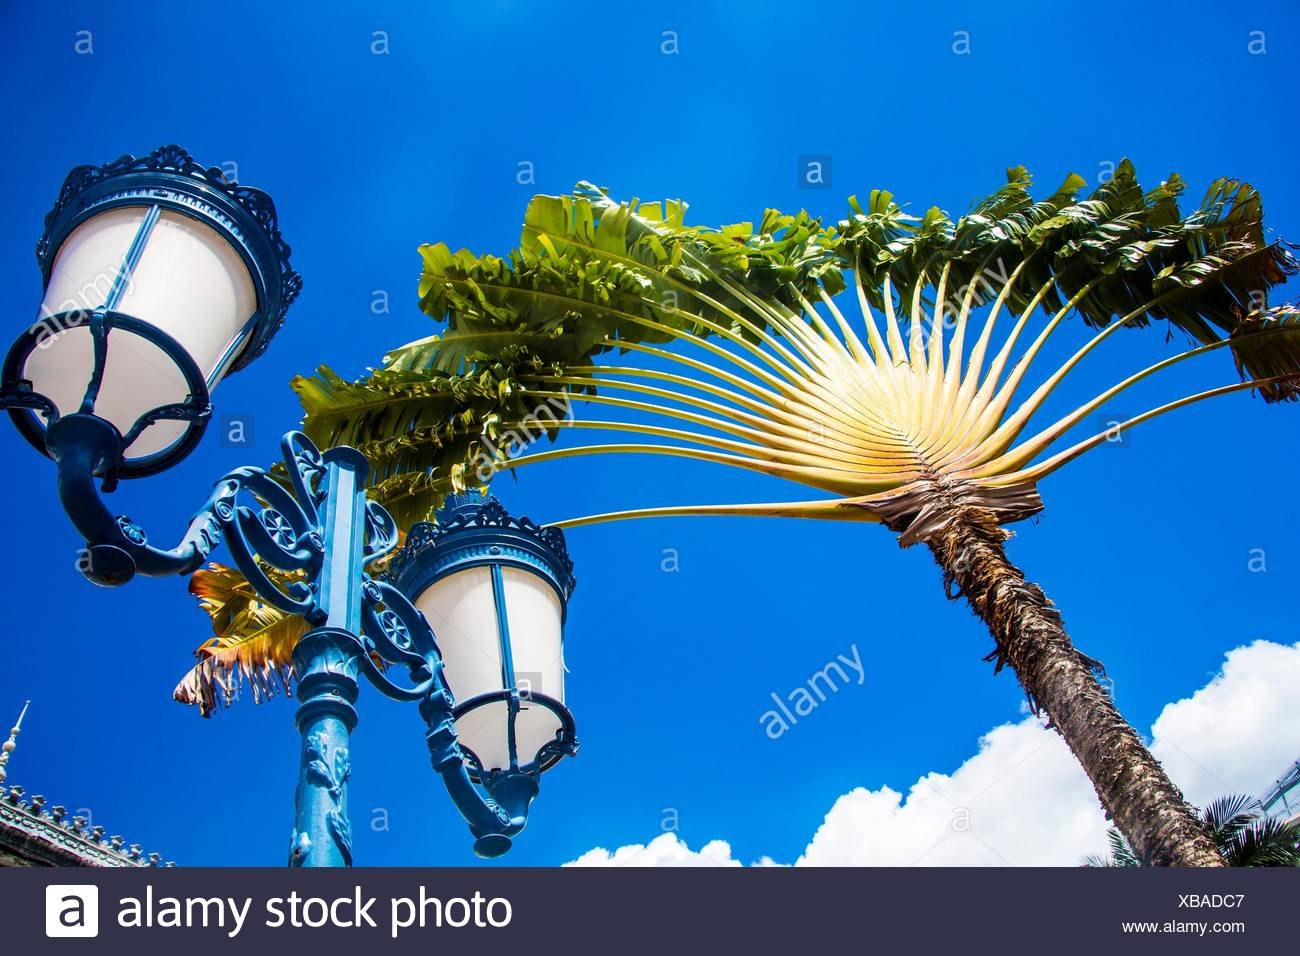 Beautiful palm tree typical to Martinique looking like a fan next to a old fashion lamp post agains a incredible blue sky. - Stock Image